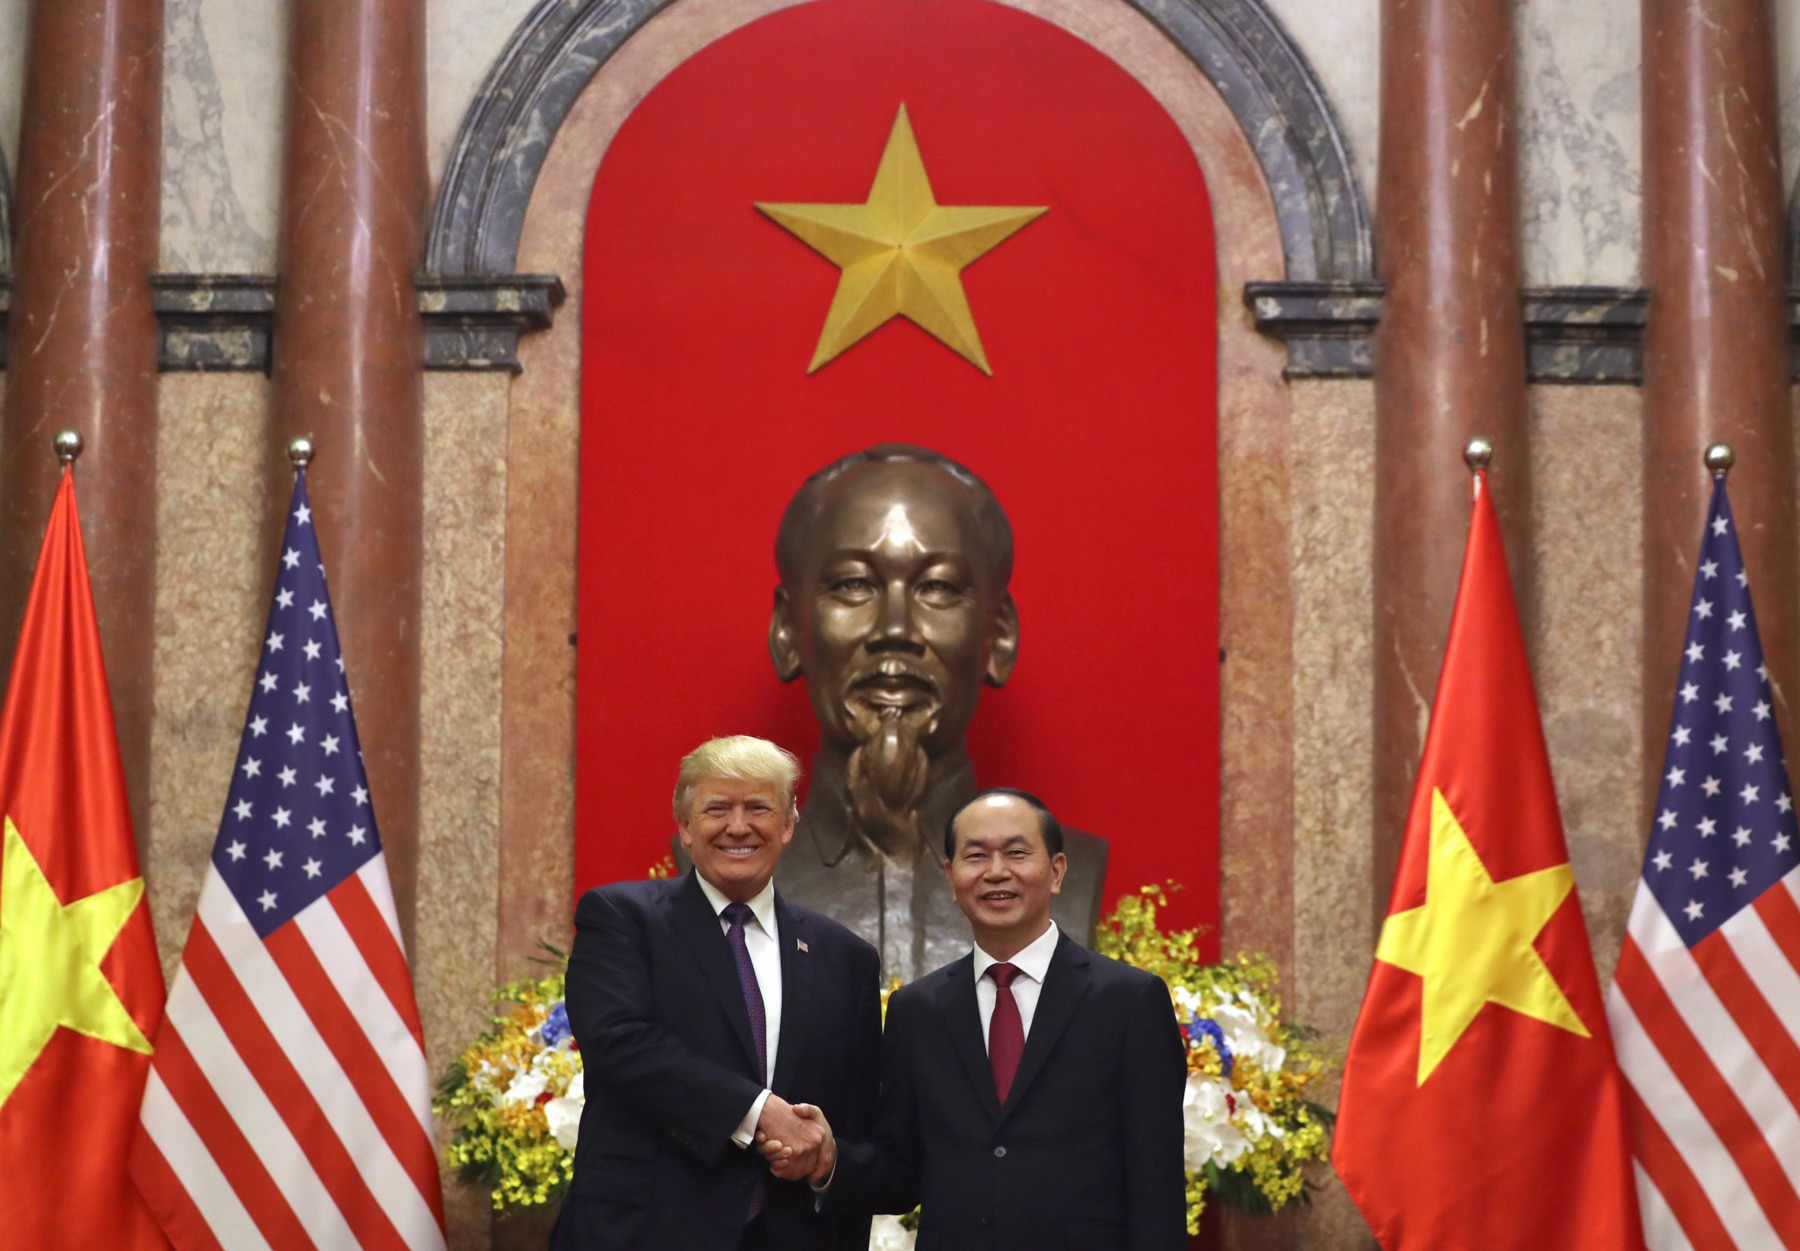 President Trump and Vietnamese President Tran Dai Quang standing in front of a bust of Ho Chi Minh (© AP Images)